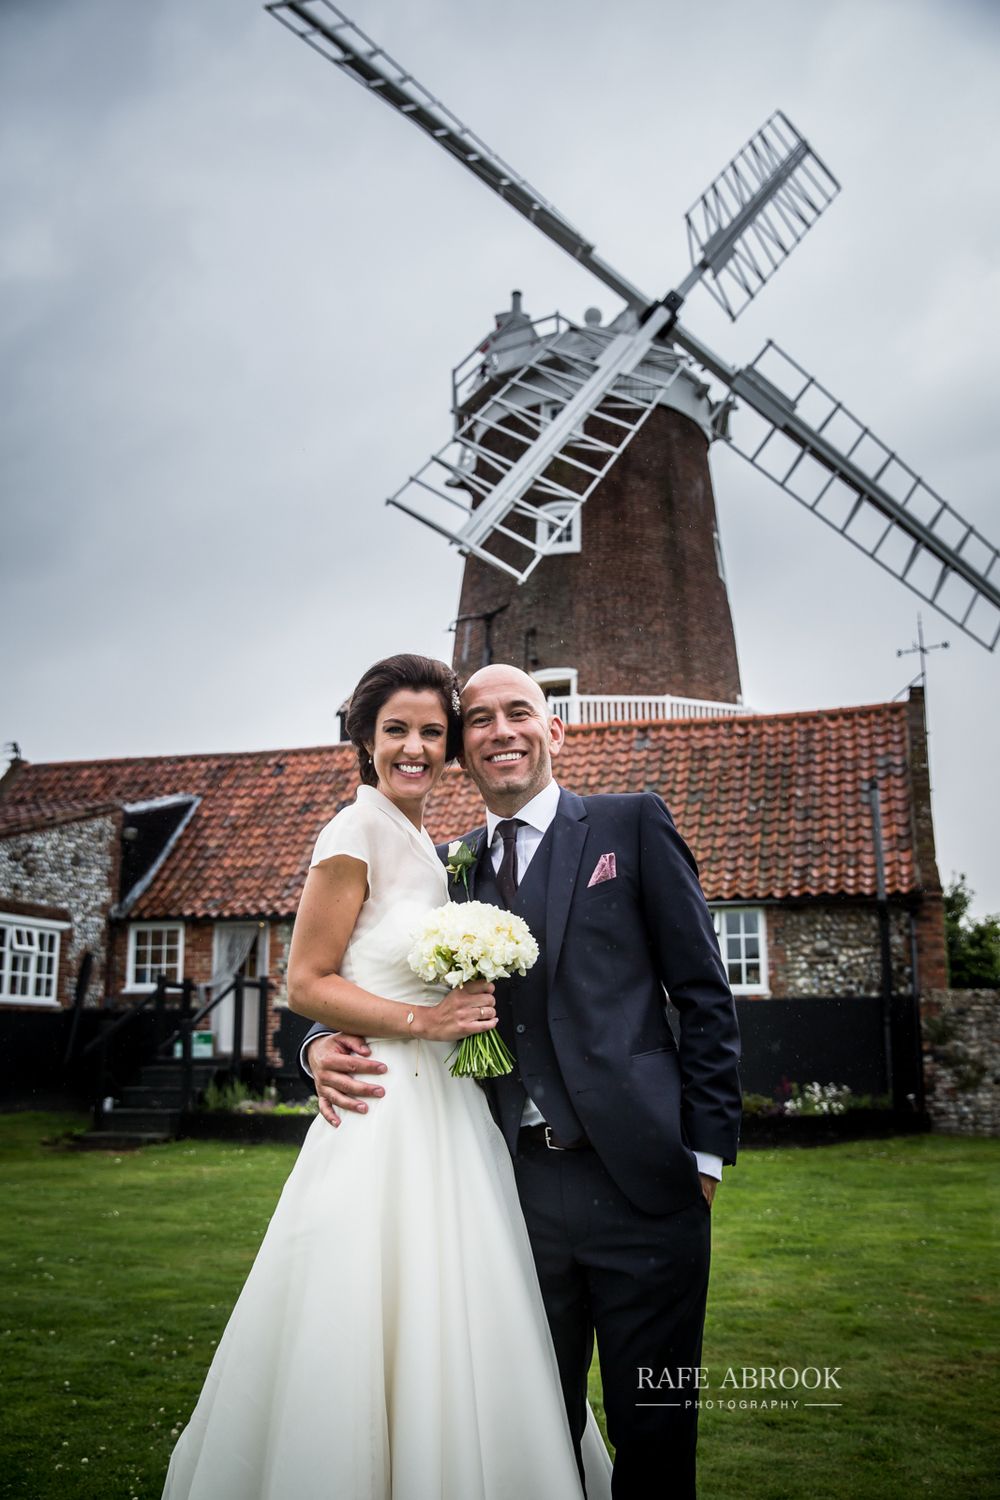 cley windmill wedding norfolk hertfordshire wedding photographer-1219.jpg